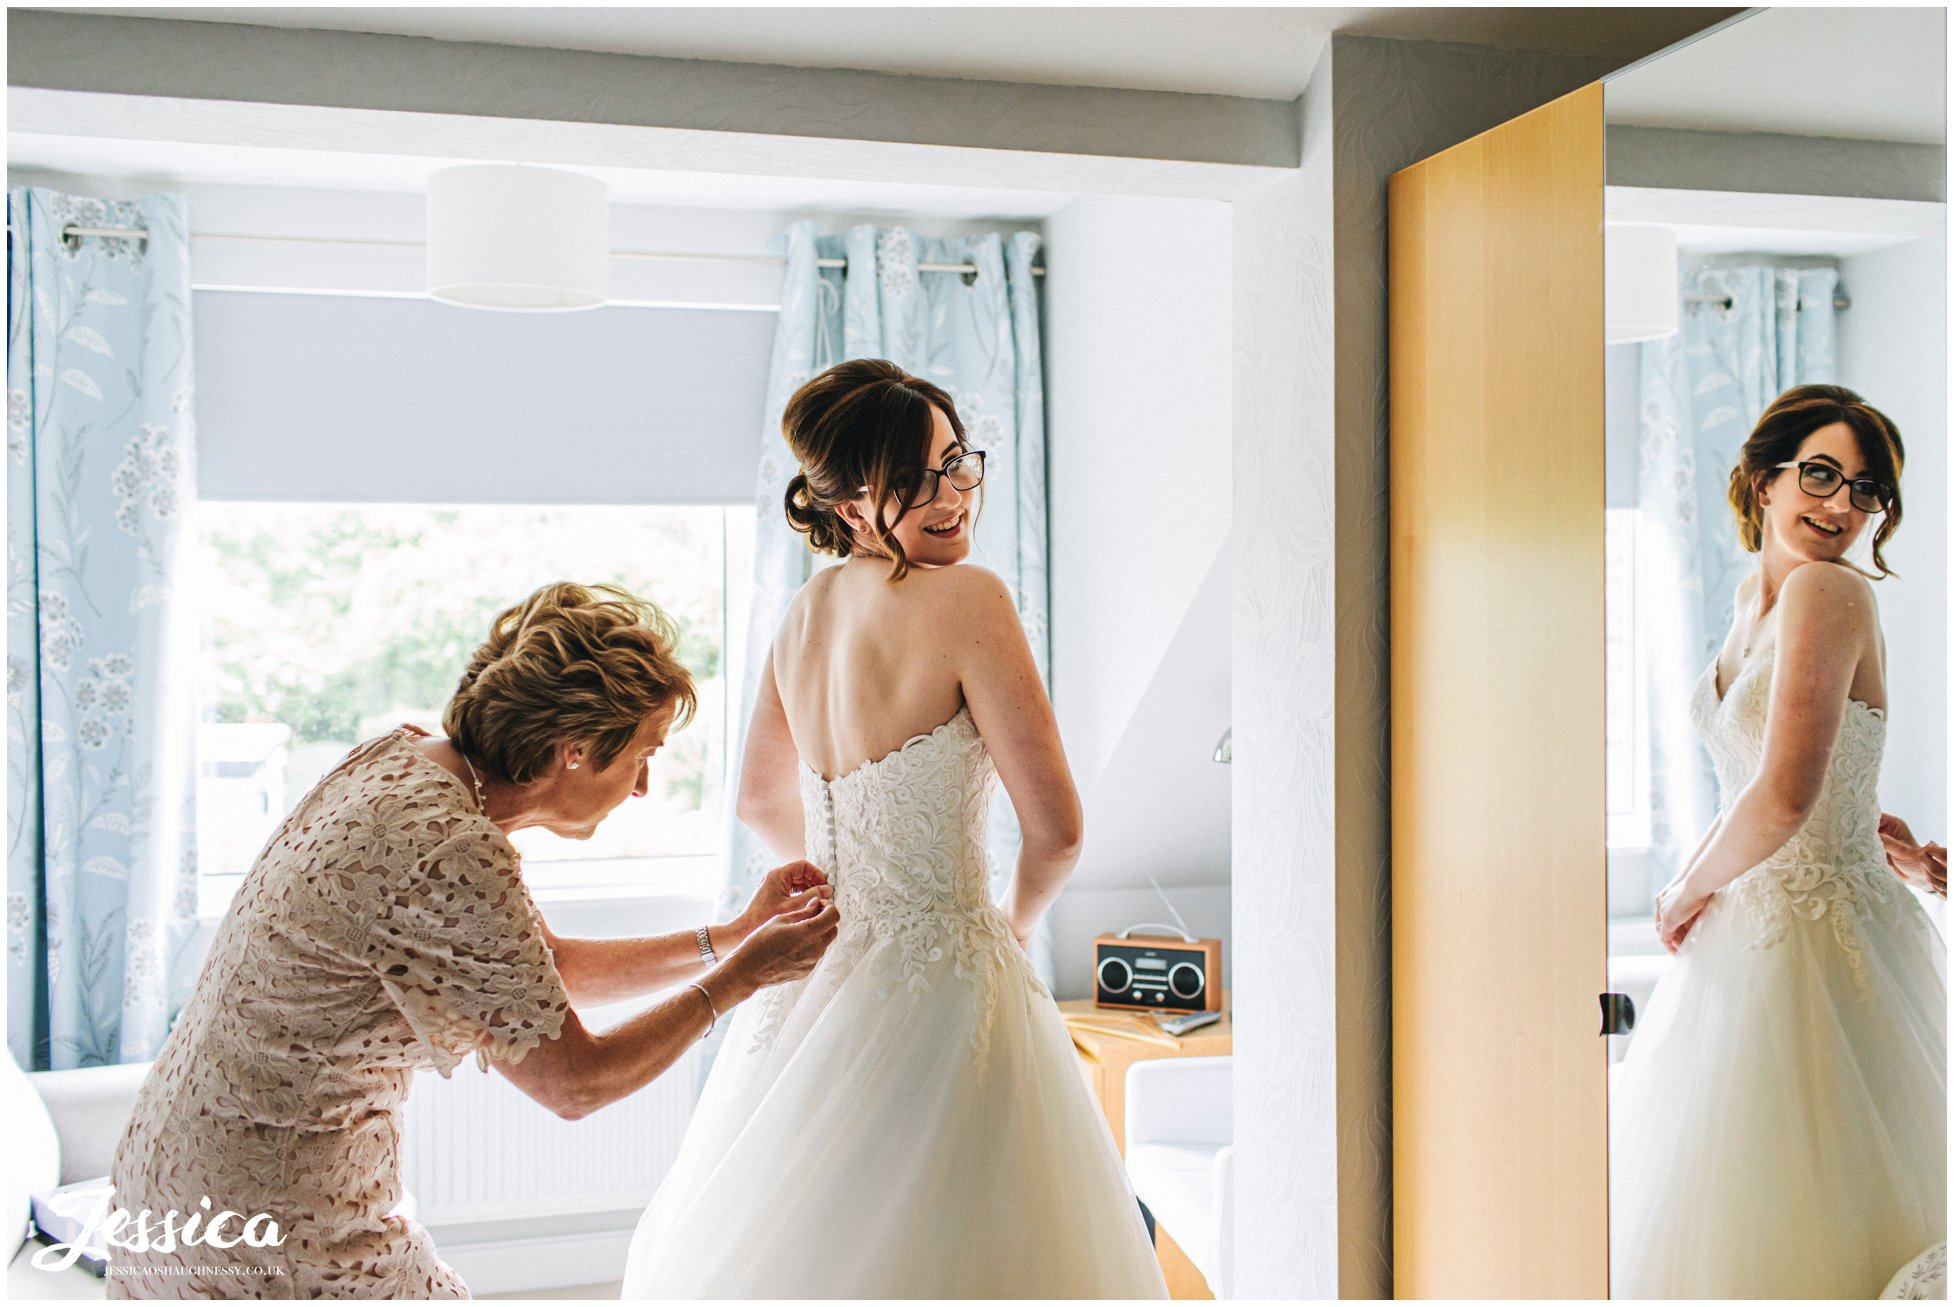 Mother of the bride fastens the wedding dress on her daughter